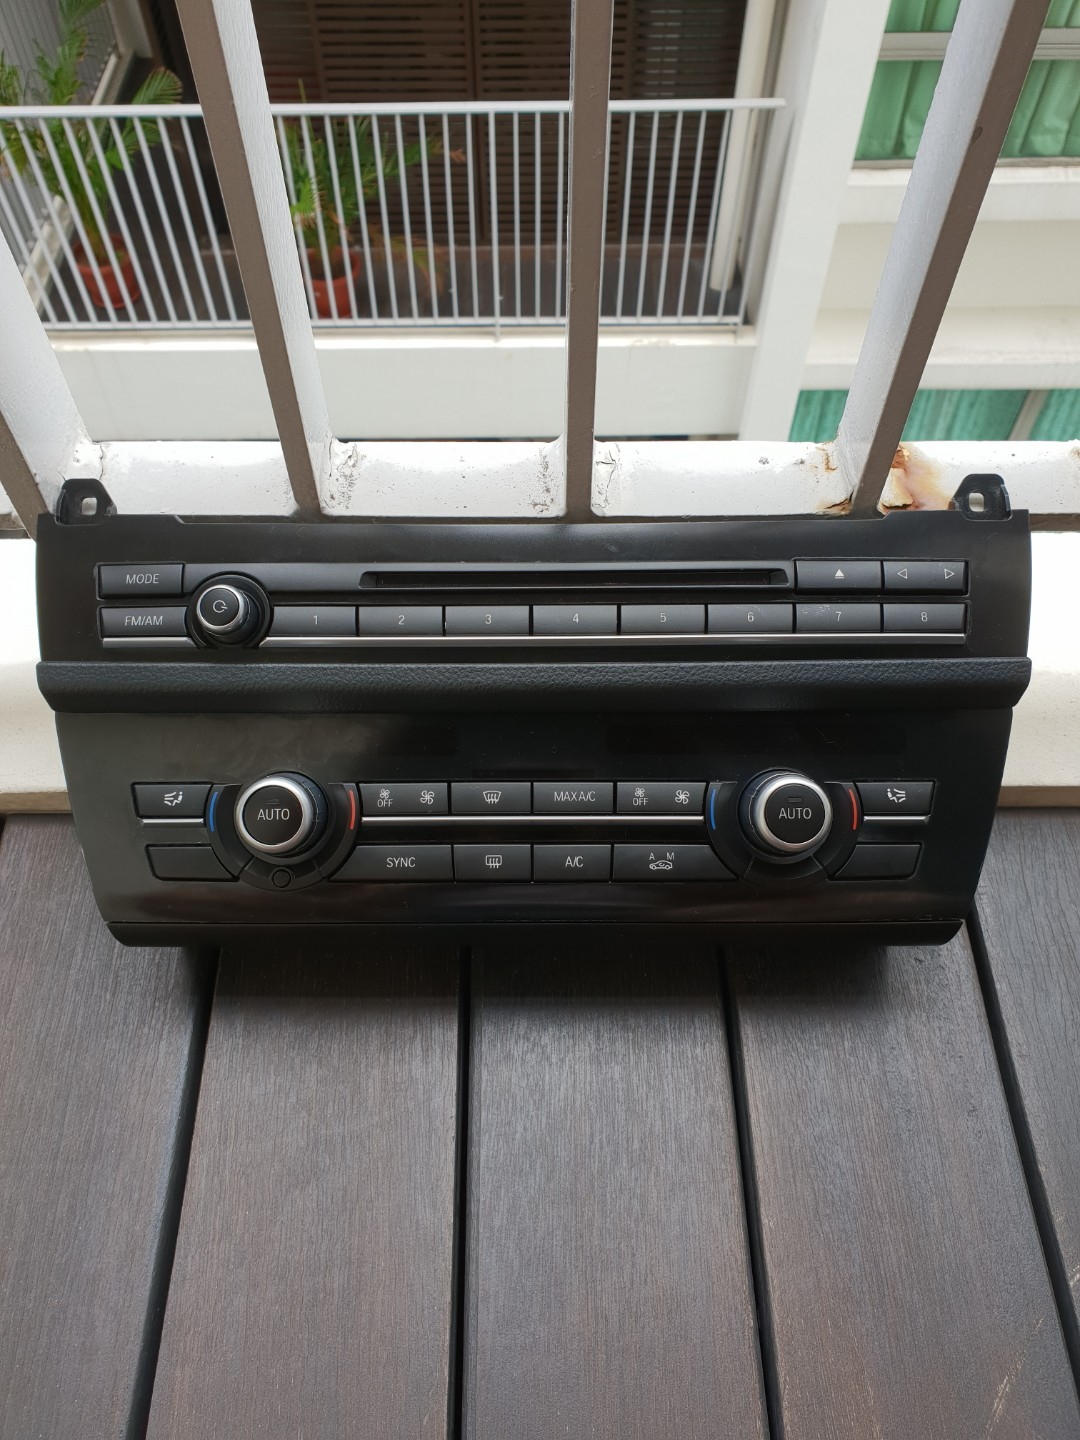 WTS F10 Climate Control | BMW SG - Singapore BMW Owners